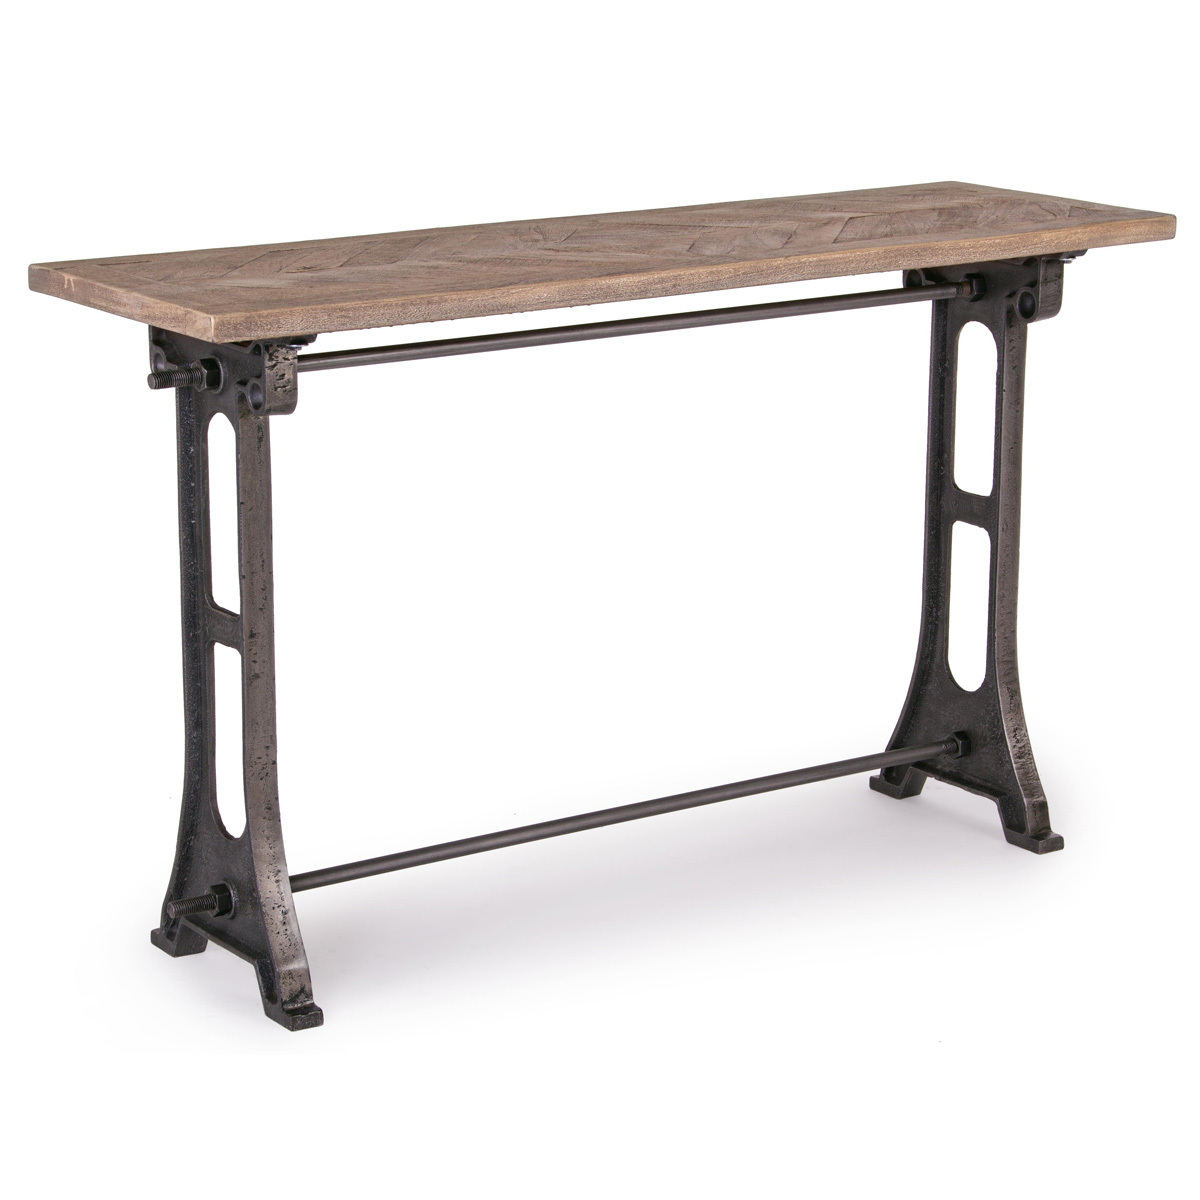 Photos 1: Bizzotto Wood and iron consoles l. 130 x 40 0745550